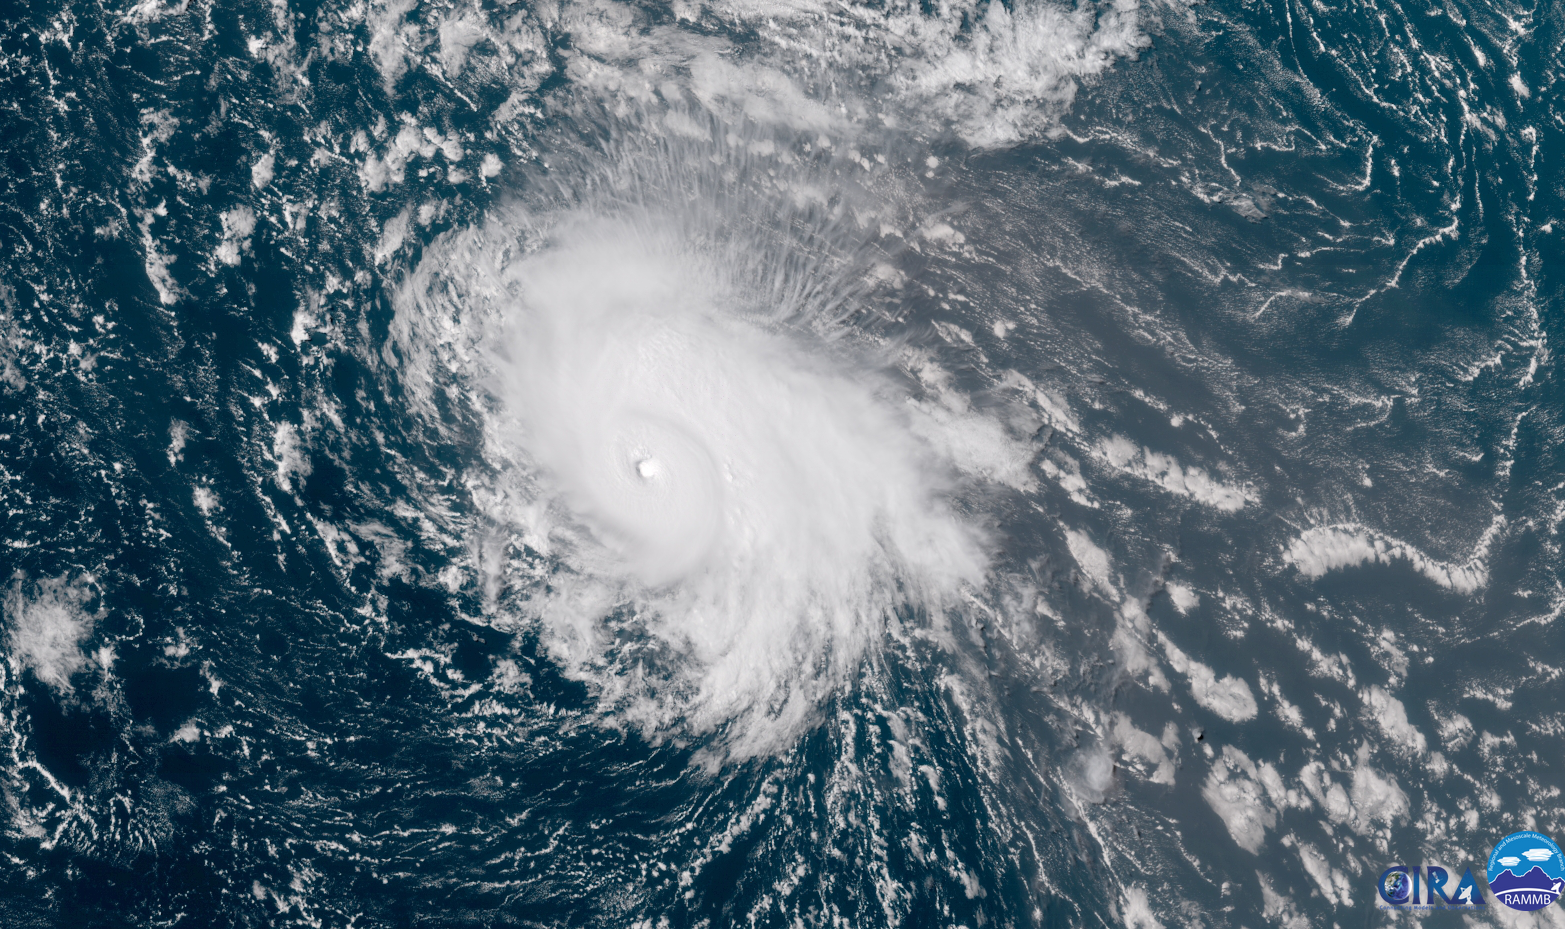 Hurricane Florence could be heading for the East Coast—but she's a tough storm to track